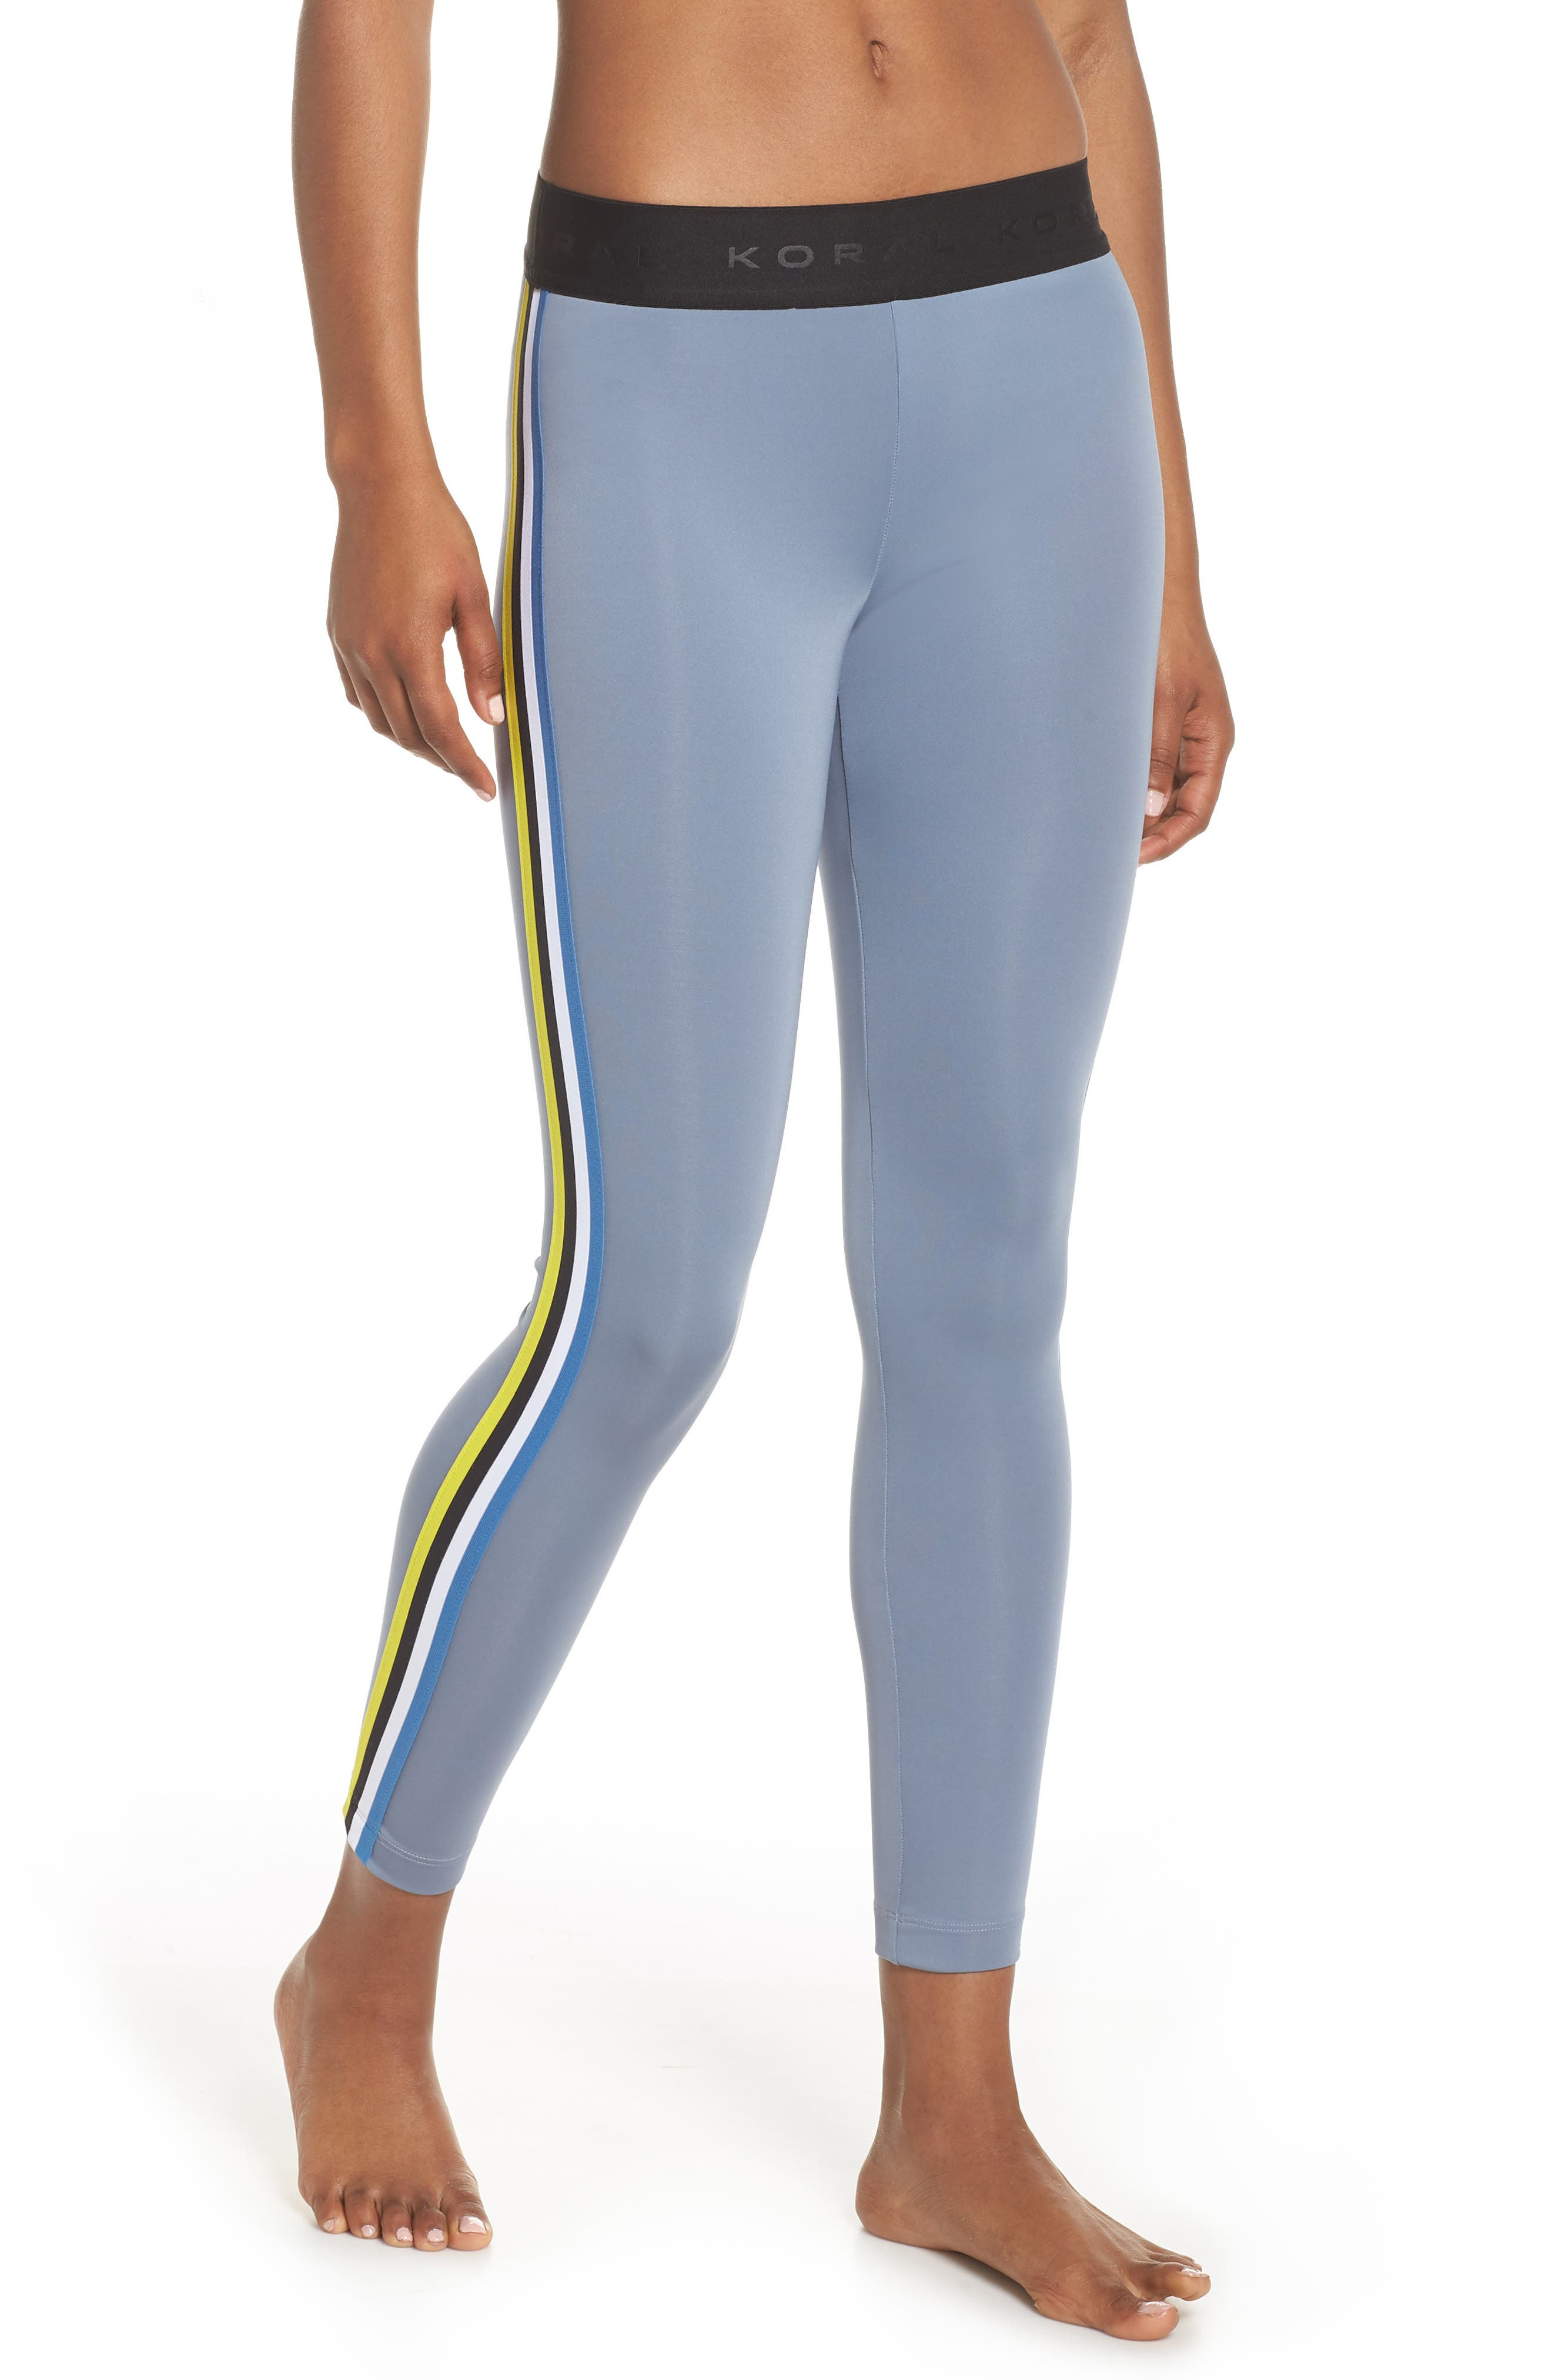 Rhys Leggings,                         Main,                         color, Nova